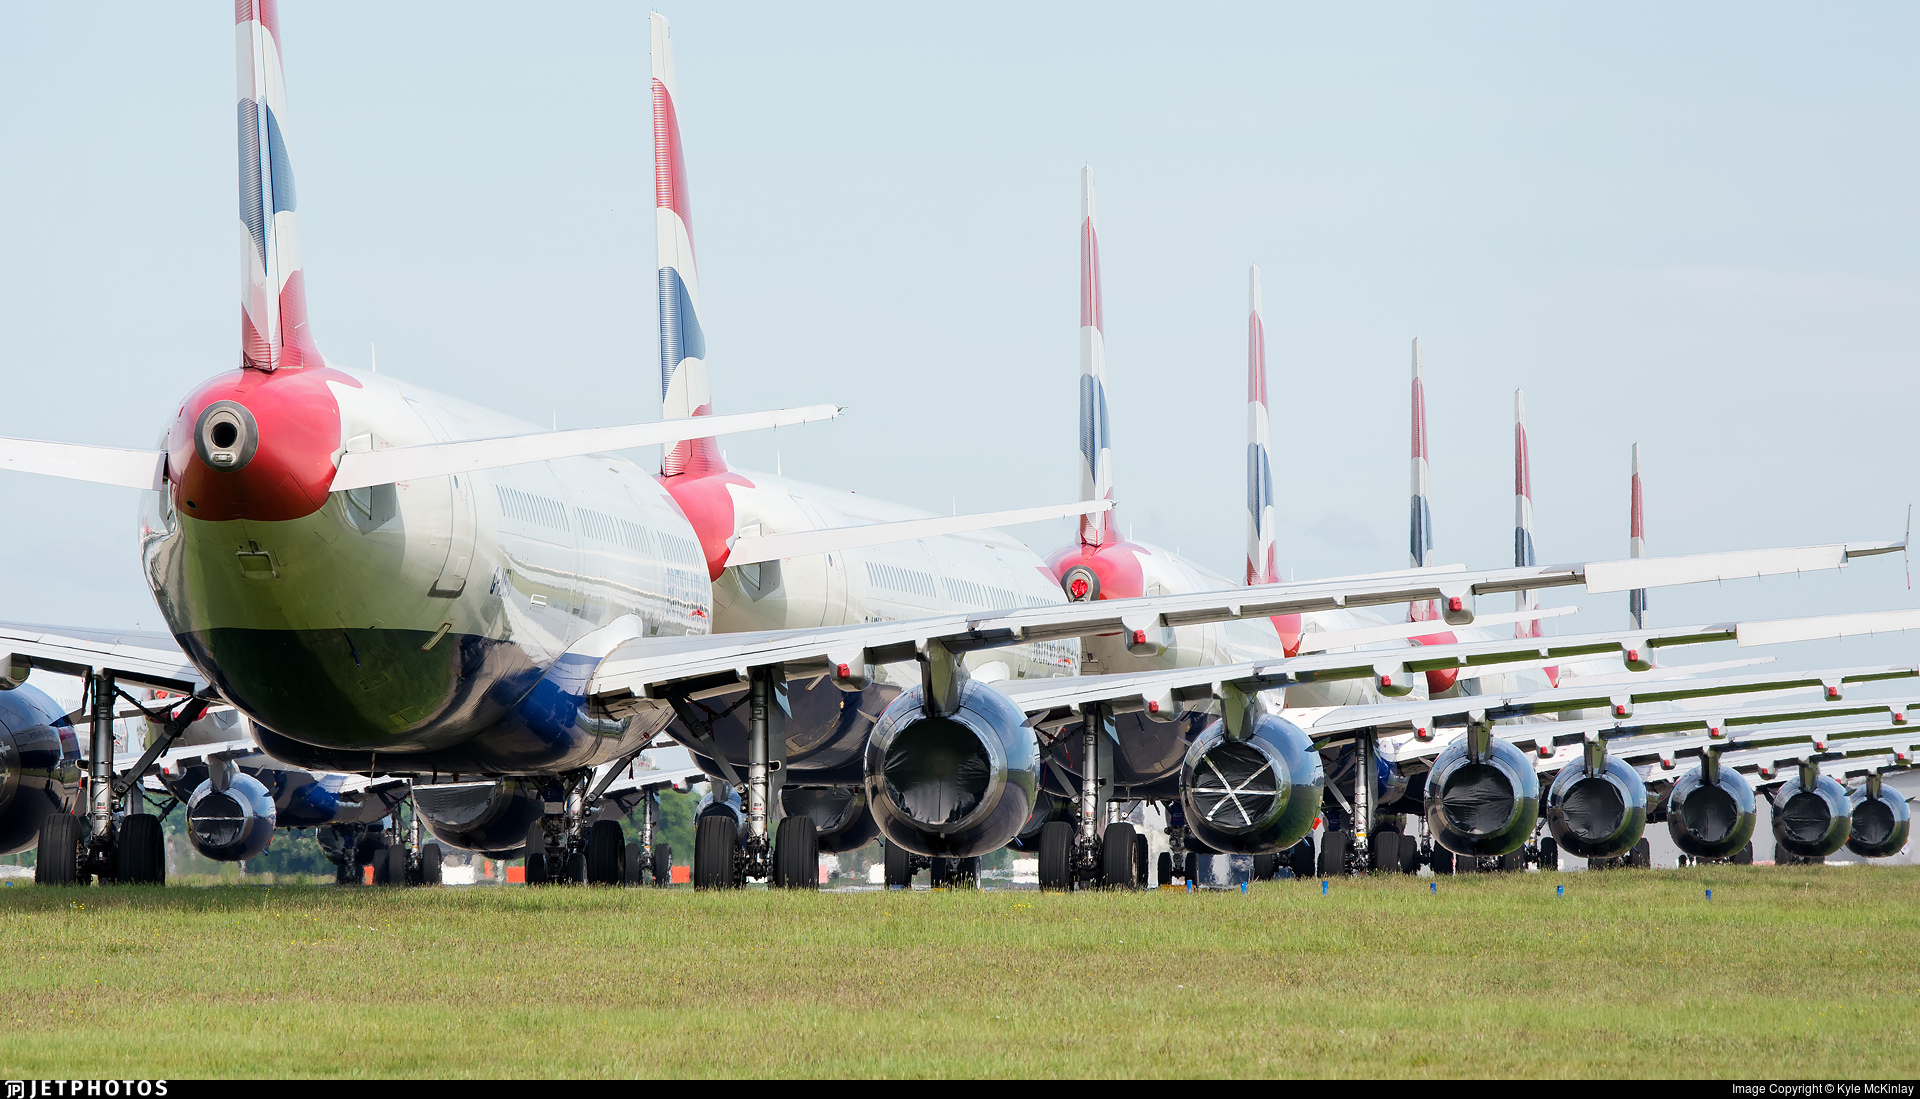 British Airways A320 family aircraft in storage